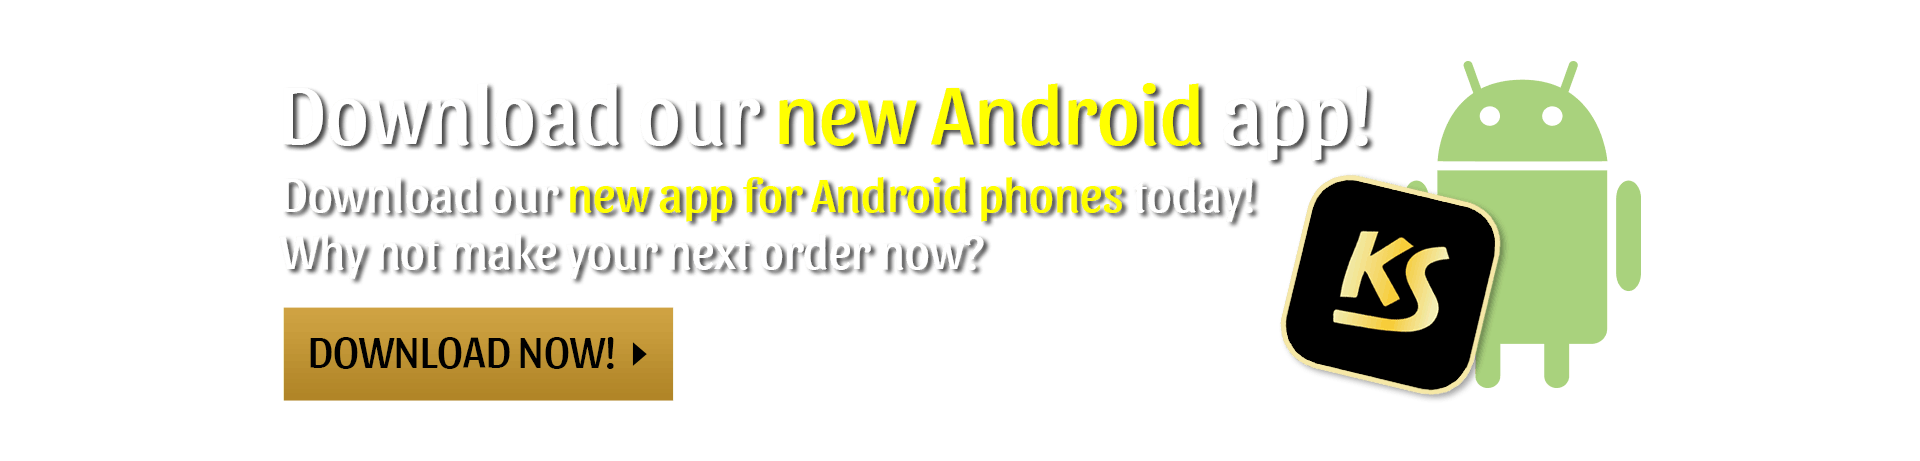 Download our new Android app!